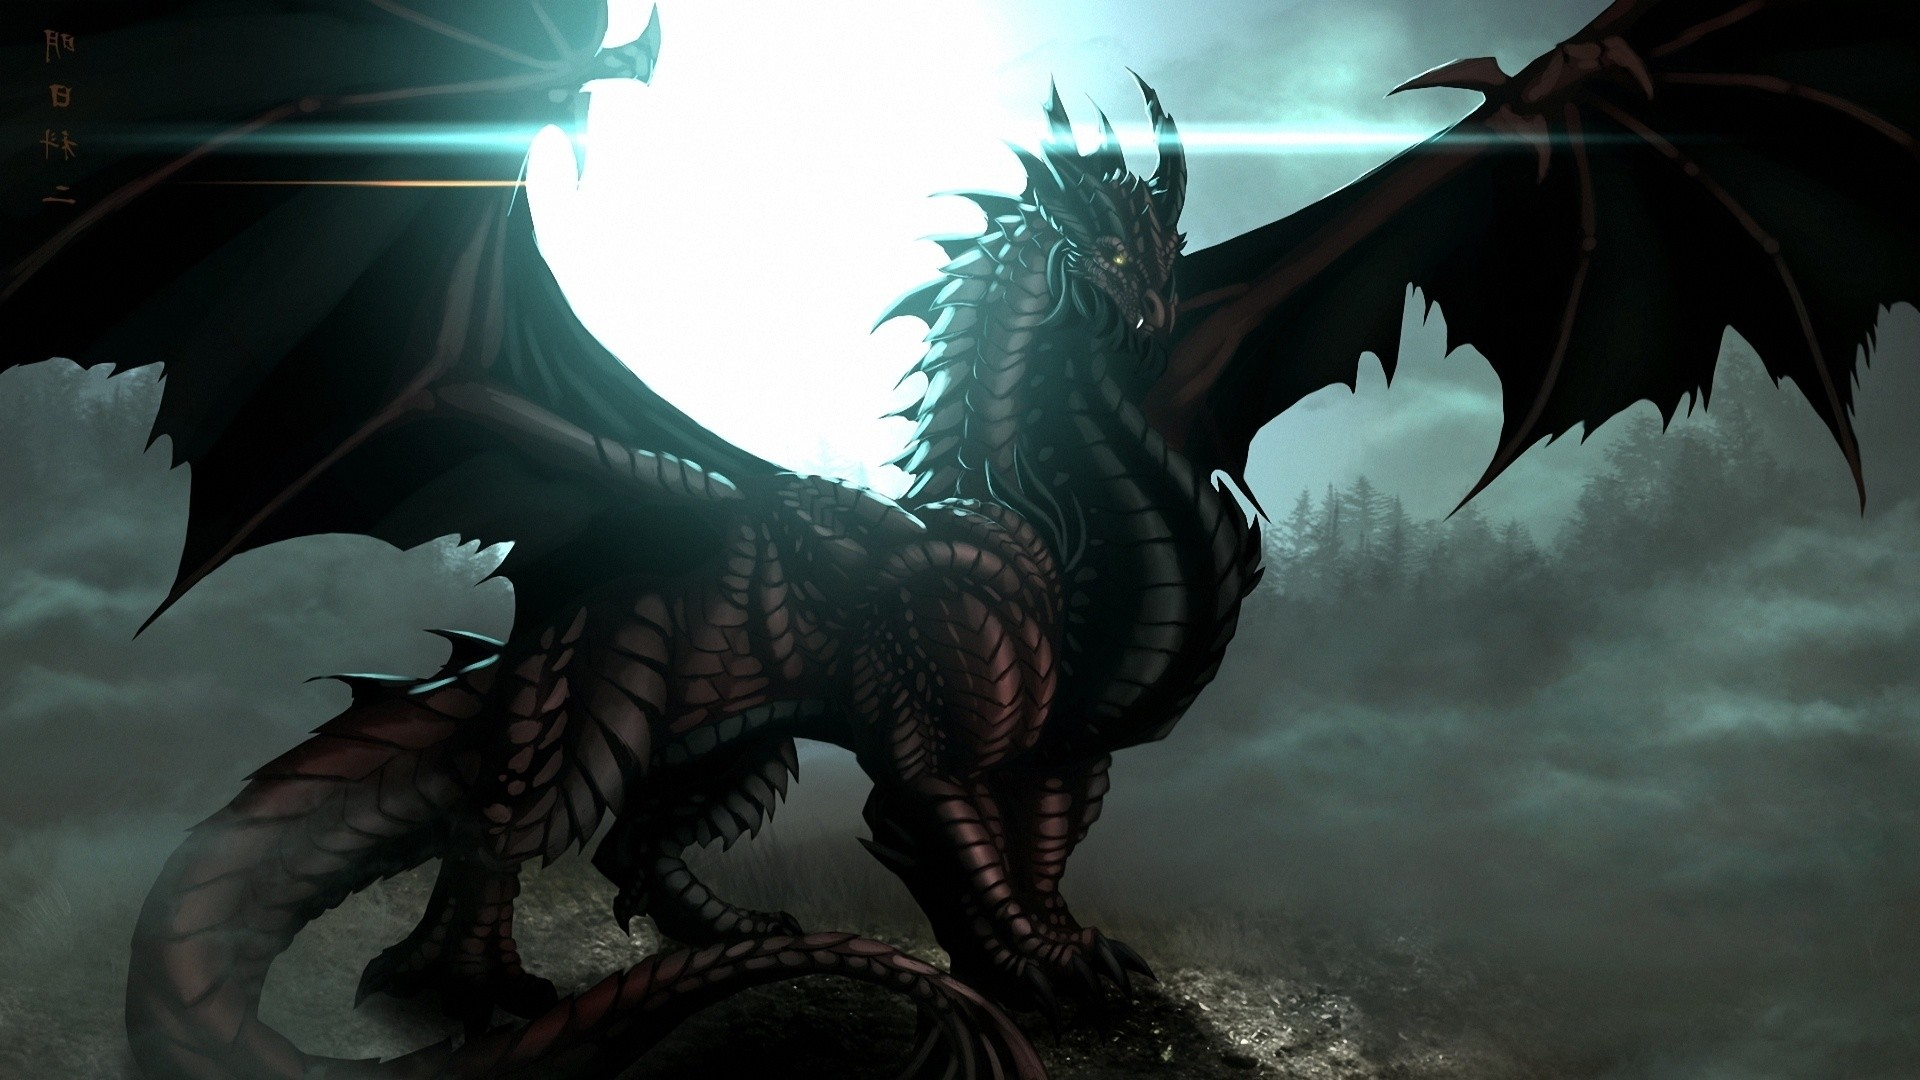 Shadow dragon wallpaper 60 images - Dragon backgrounds 1920x1080 ...